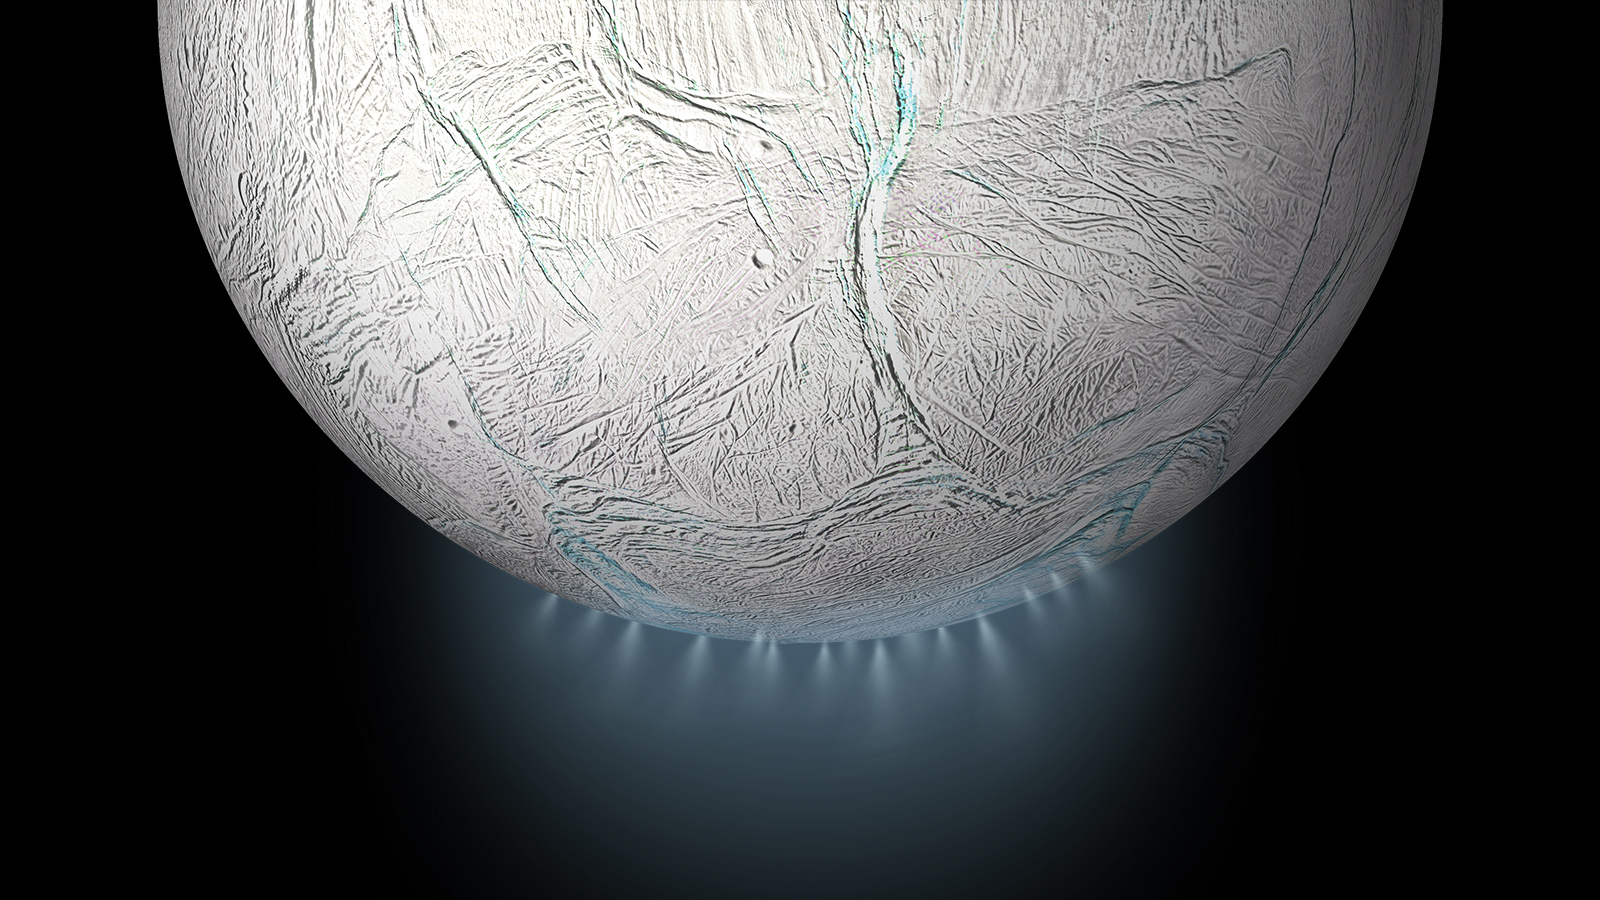 Enceladus Backgrounds on Wallpapers Vista